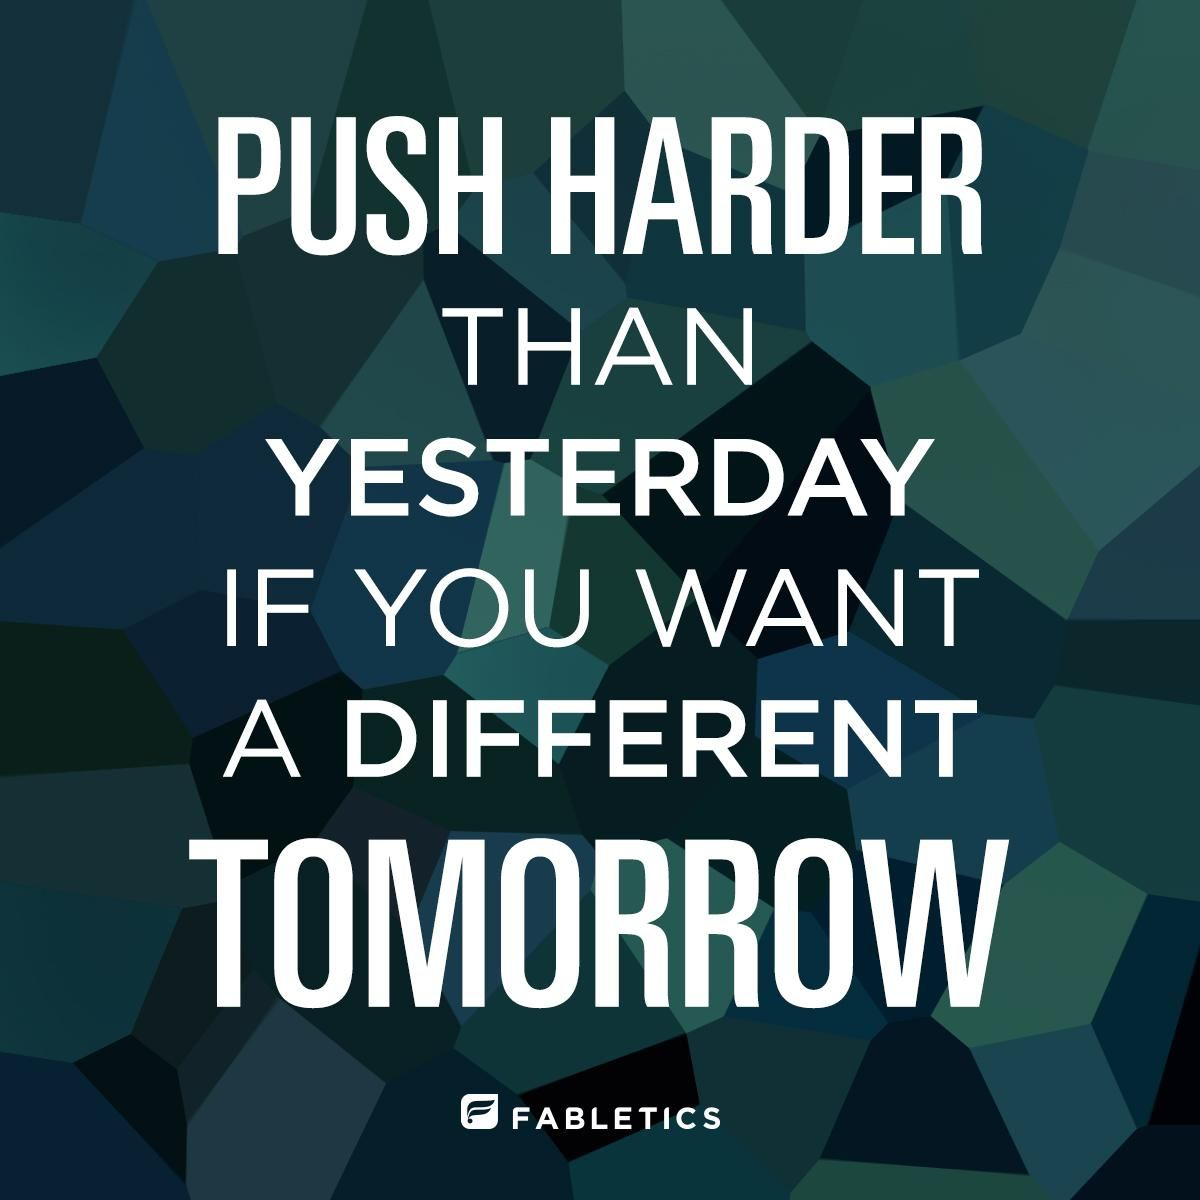 The Best Health And Fitness Quotes The Fabletics Blog Fitness Motivation Quotes Fitness Inspiration Quotes Fitness Motivation Inspiration